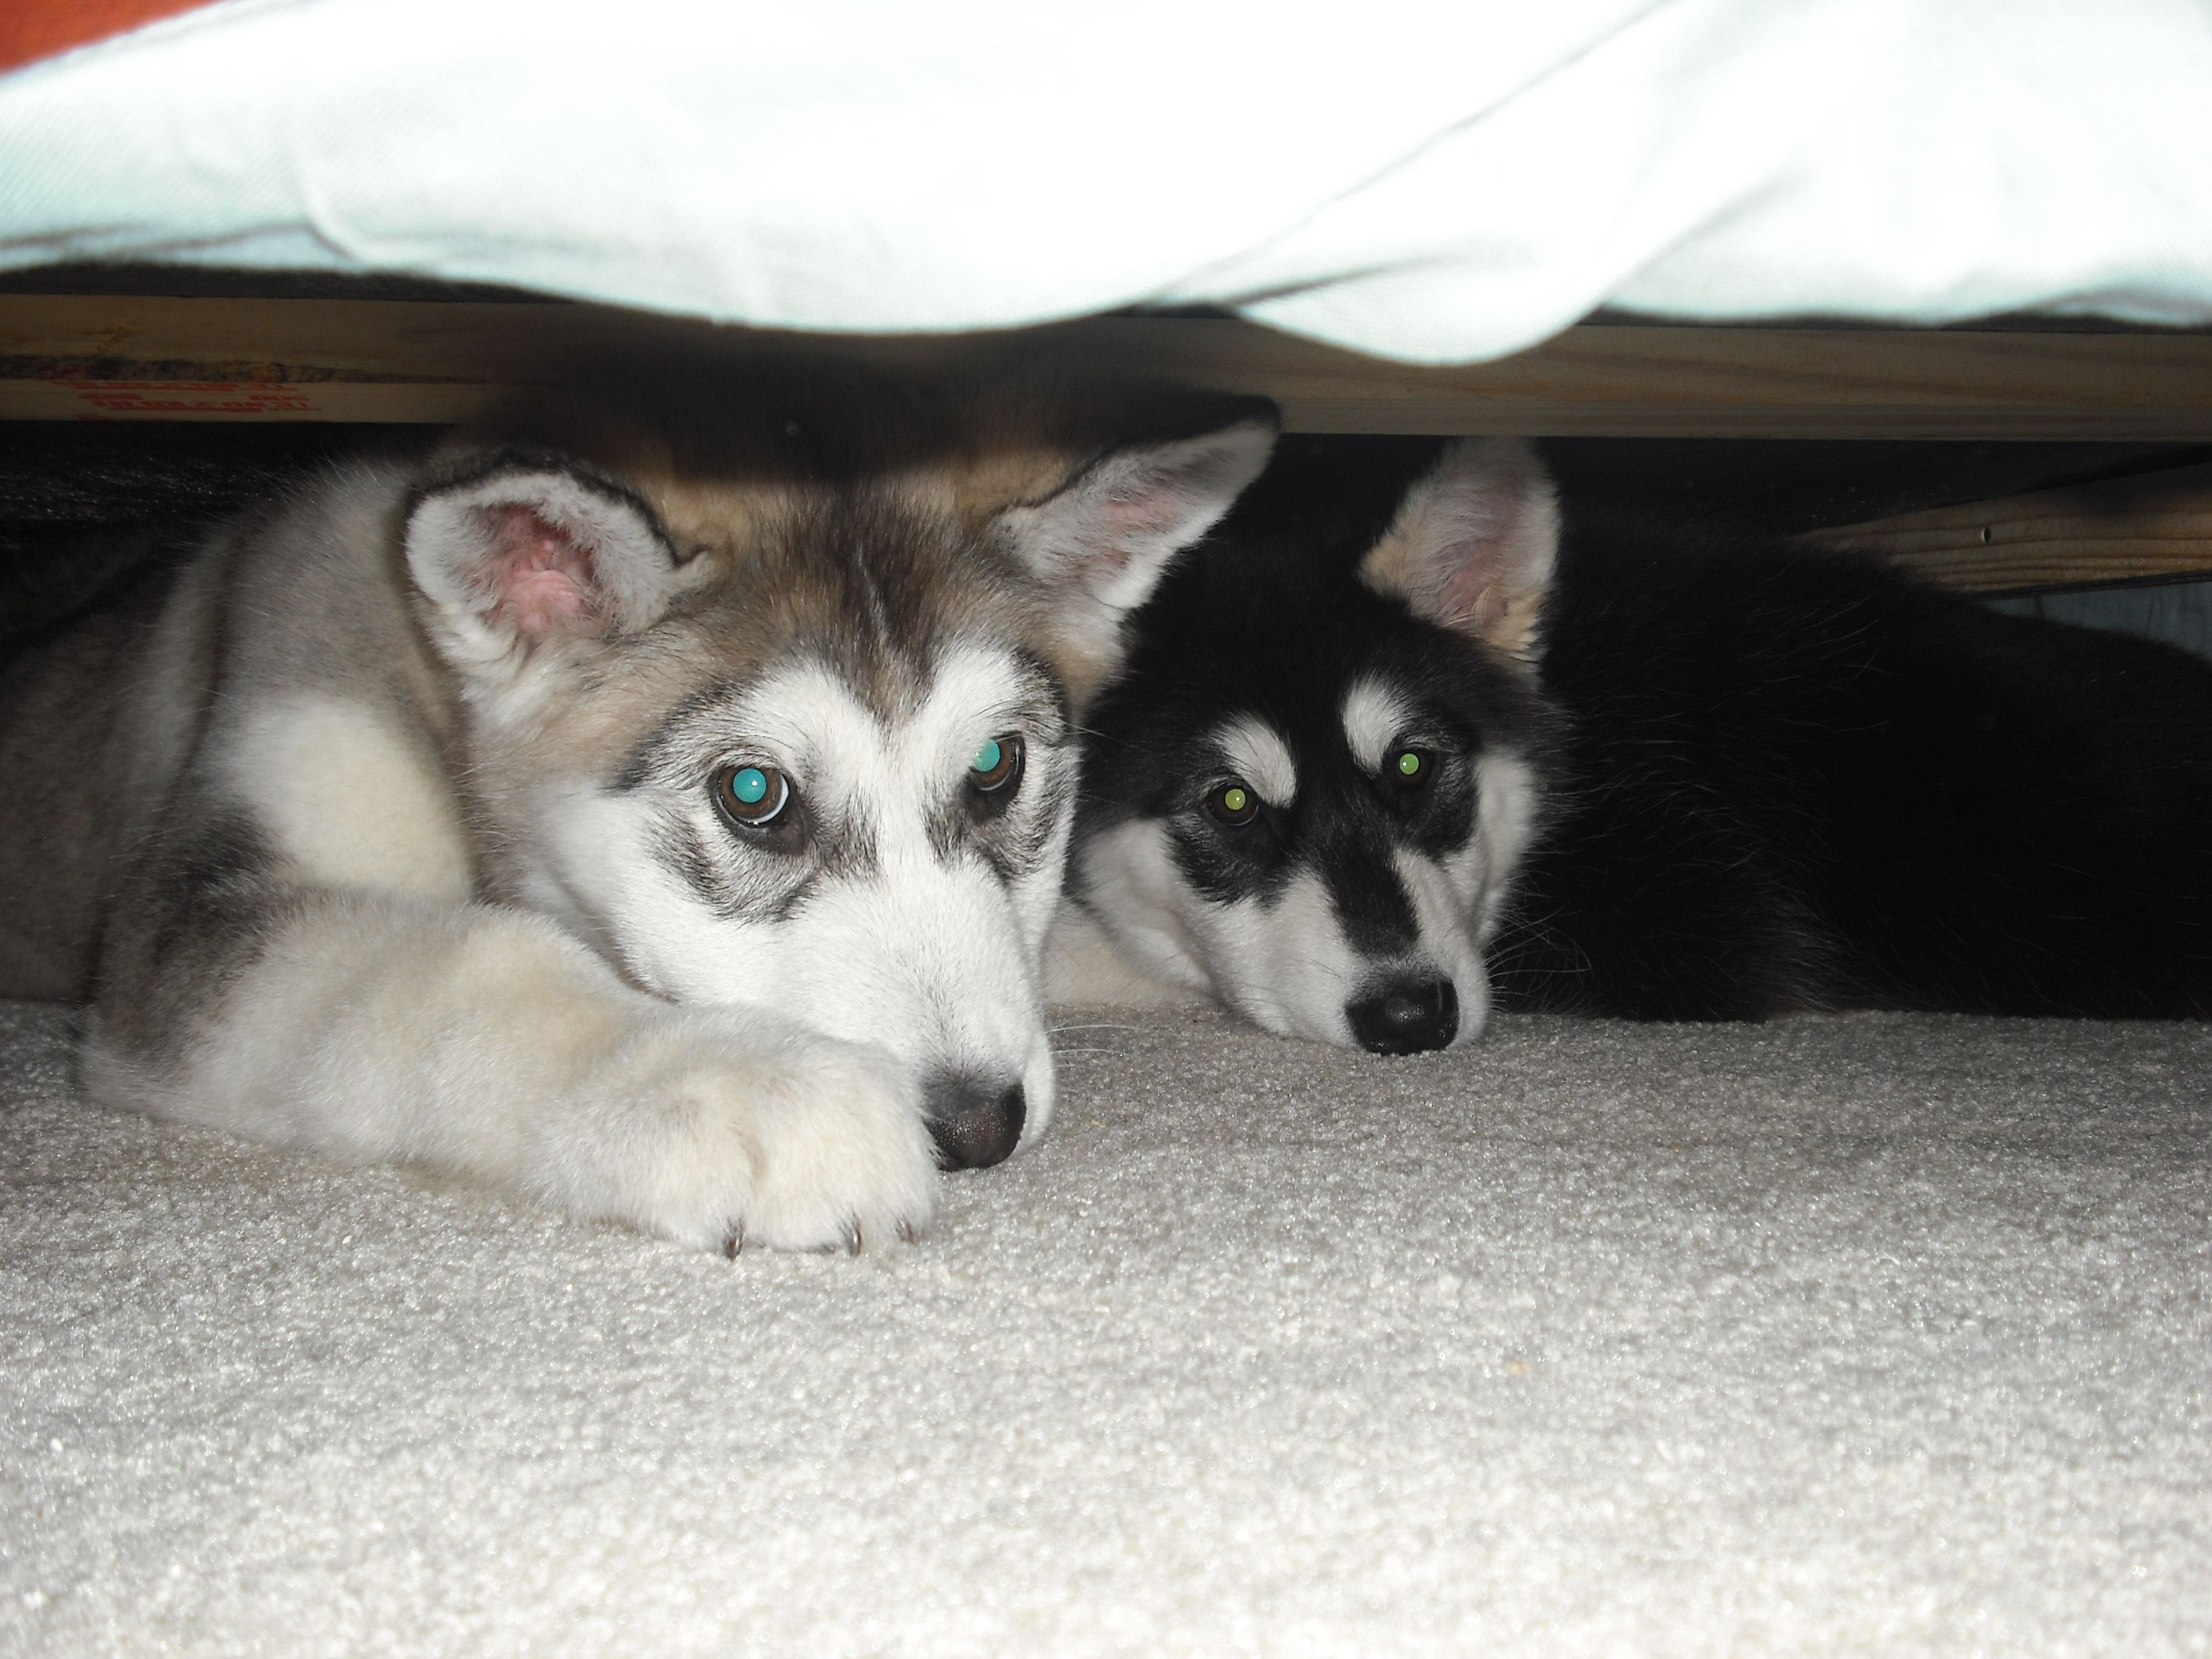 Just hanging under the bed.